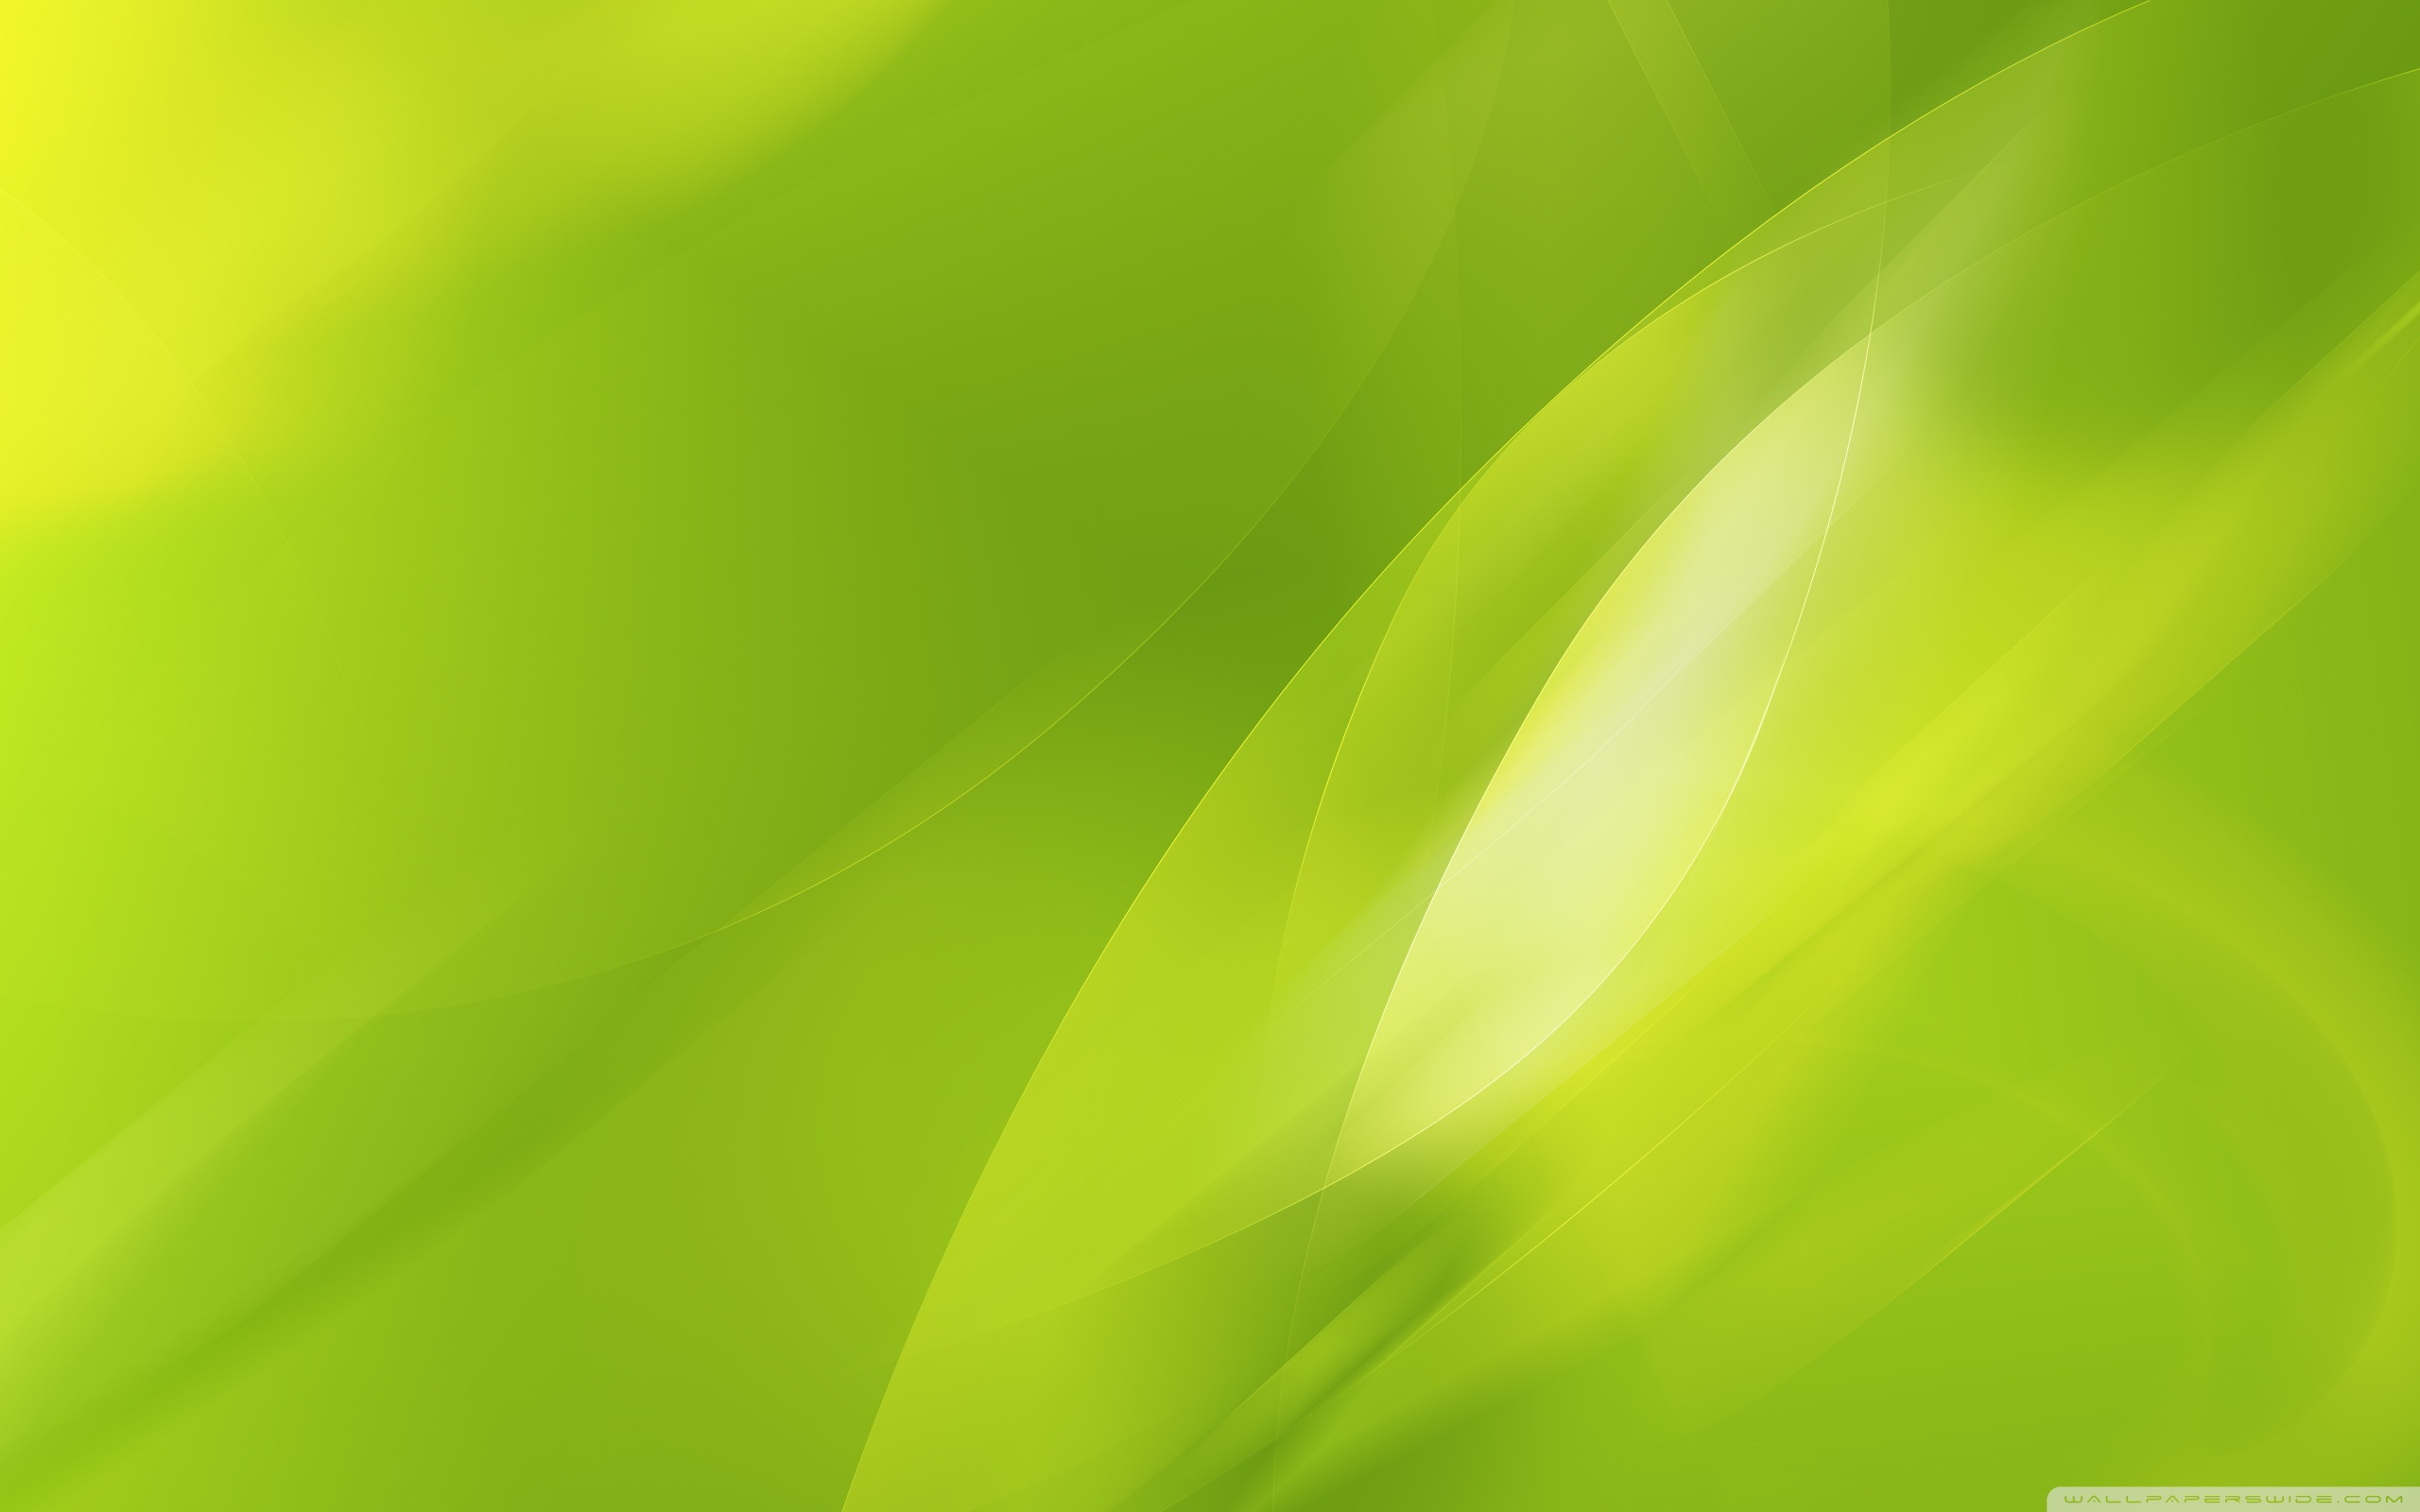 Green Graphic Wallpaper